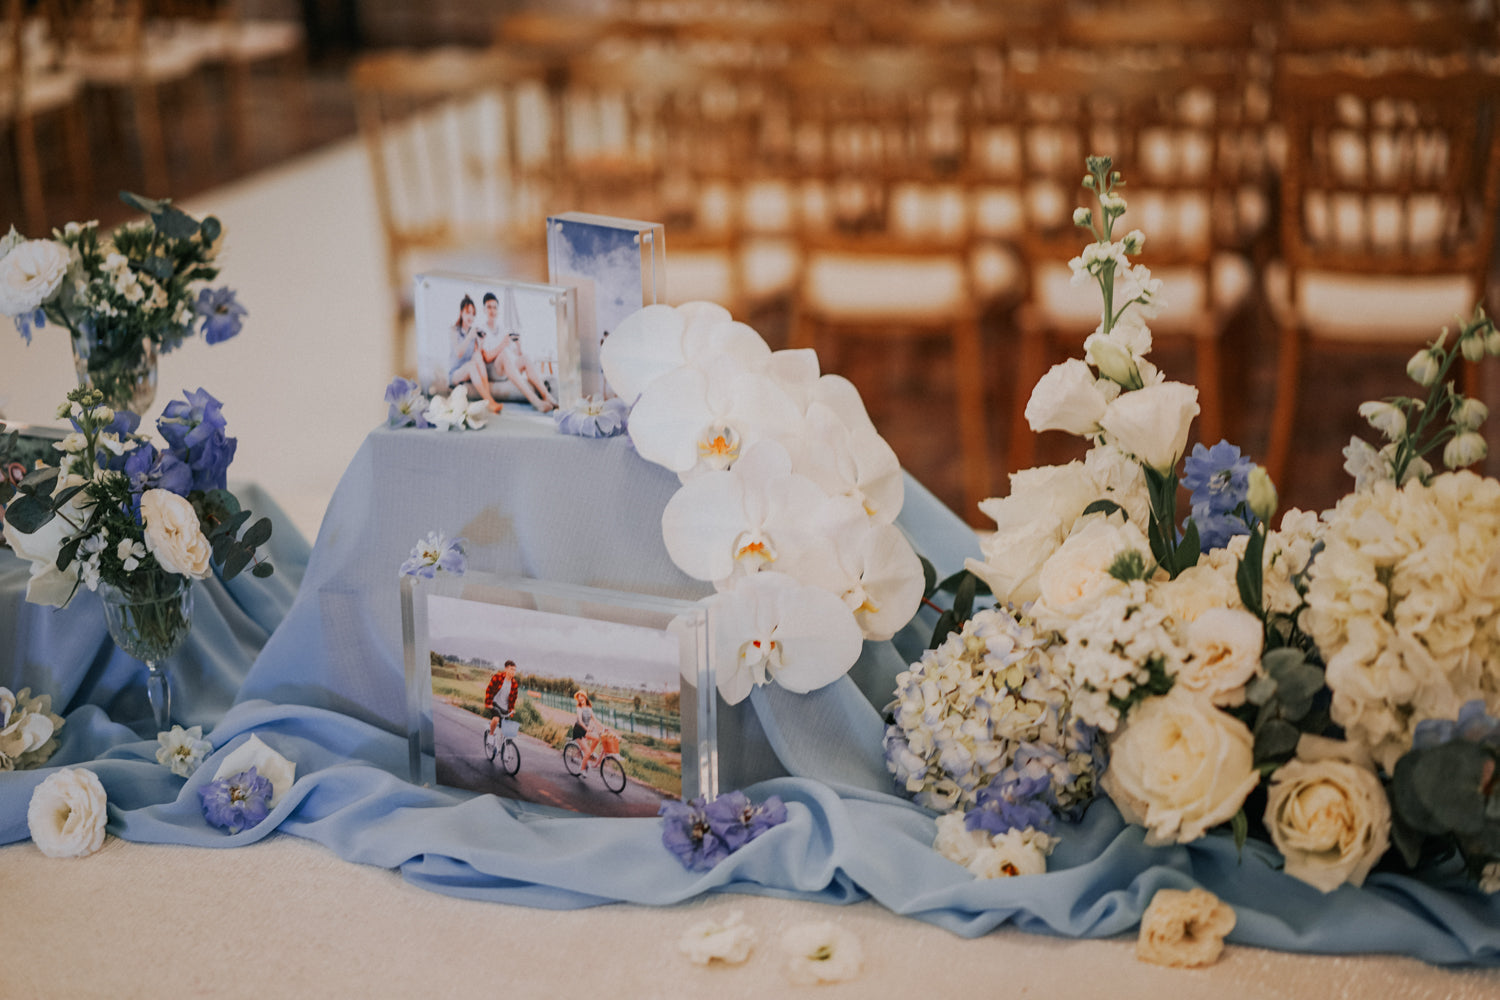 Couple photos in acrylic frames, positioned on baby blue table runner, decorated by white orchids and other flowers in blue and purple for weddings at CHIJMES